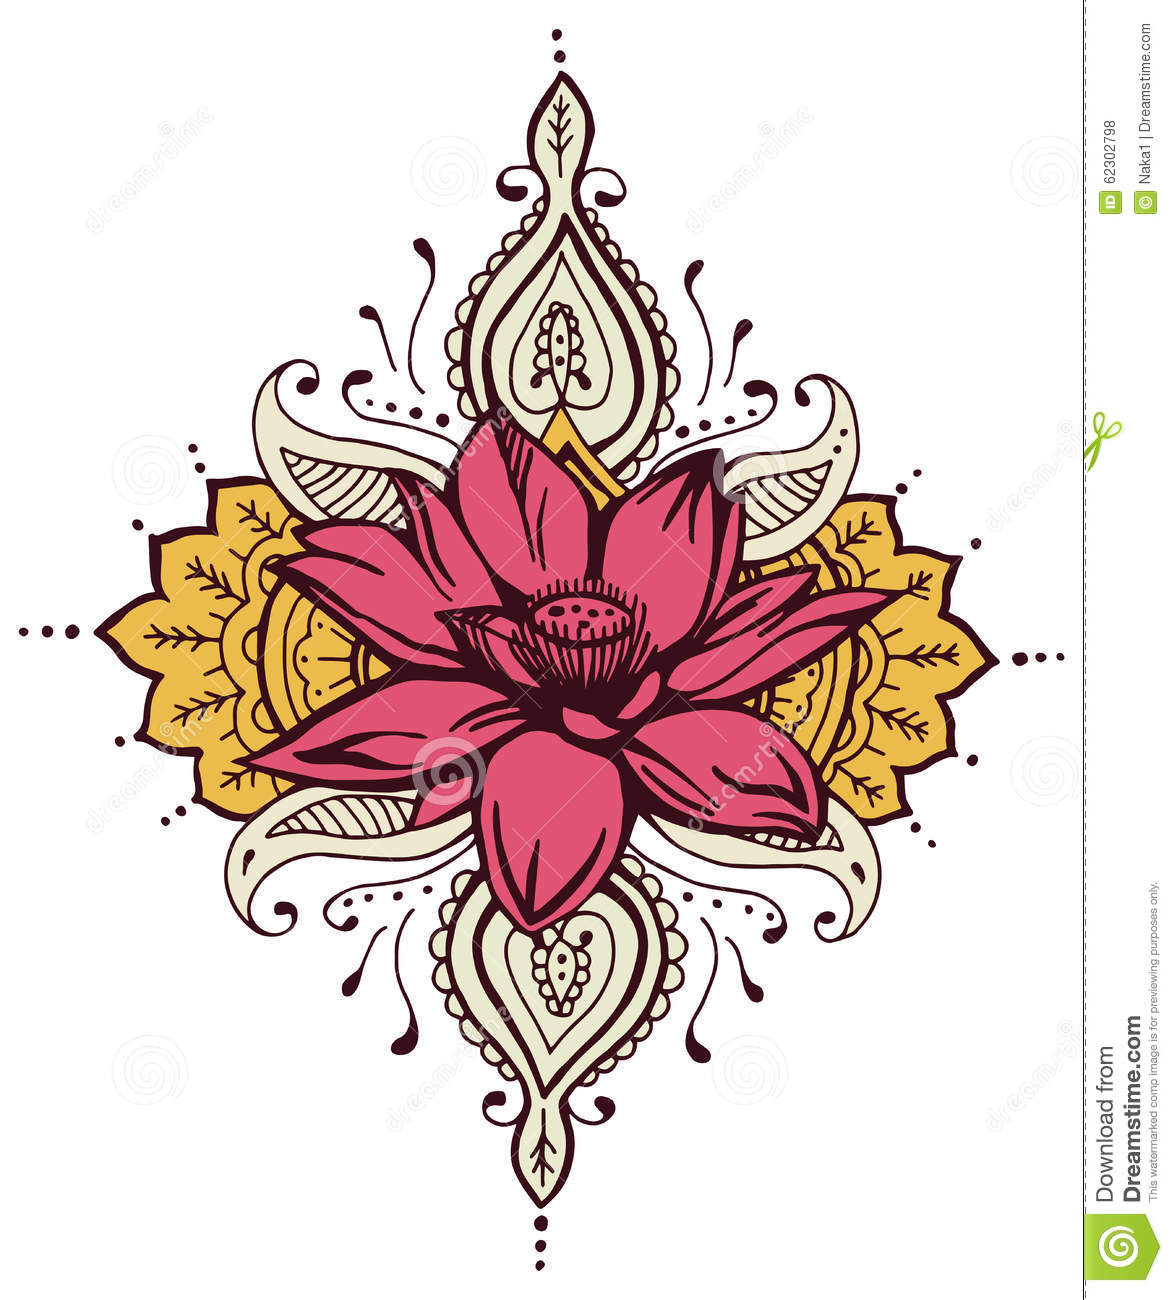 Lotus paisley henna design stock illustration illustration of lotus paisley henna design izmirmasajfo Image collections